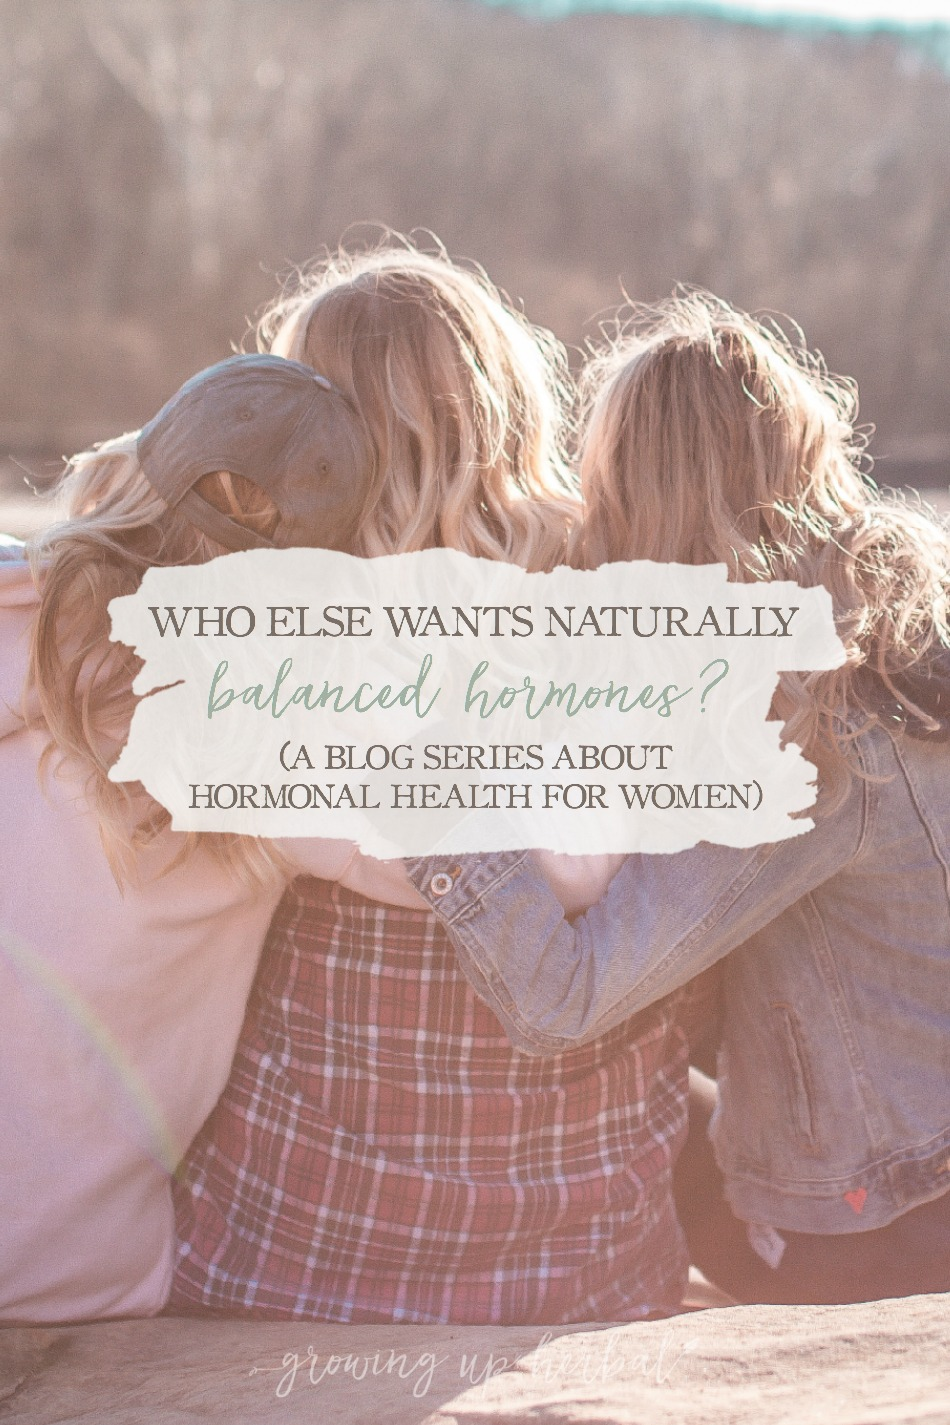 Who Else Wants Naturally Balanced Hormones? [A Blog Series About Hormonal Health For Women] | Growing Up Herbal | Calling all for women of childbearing age and beyond — come learn about hormone health the natural way!